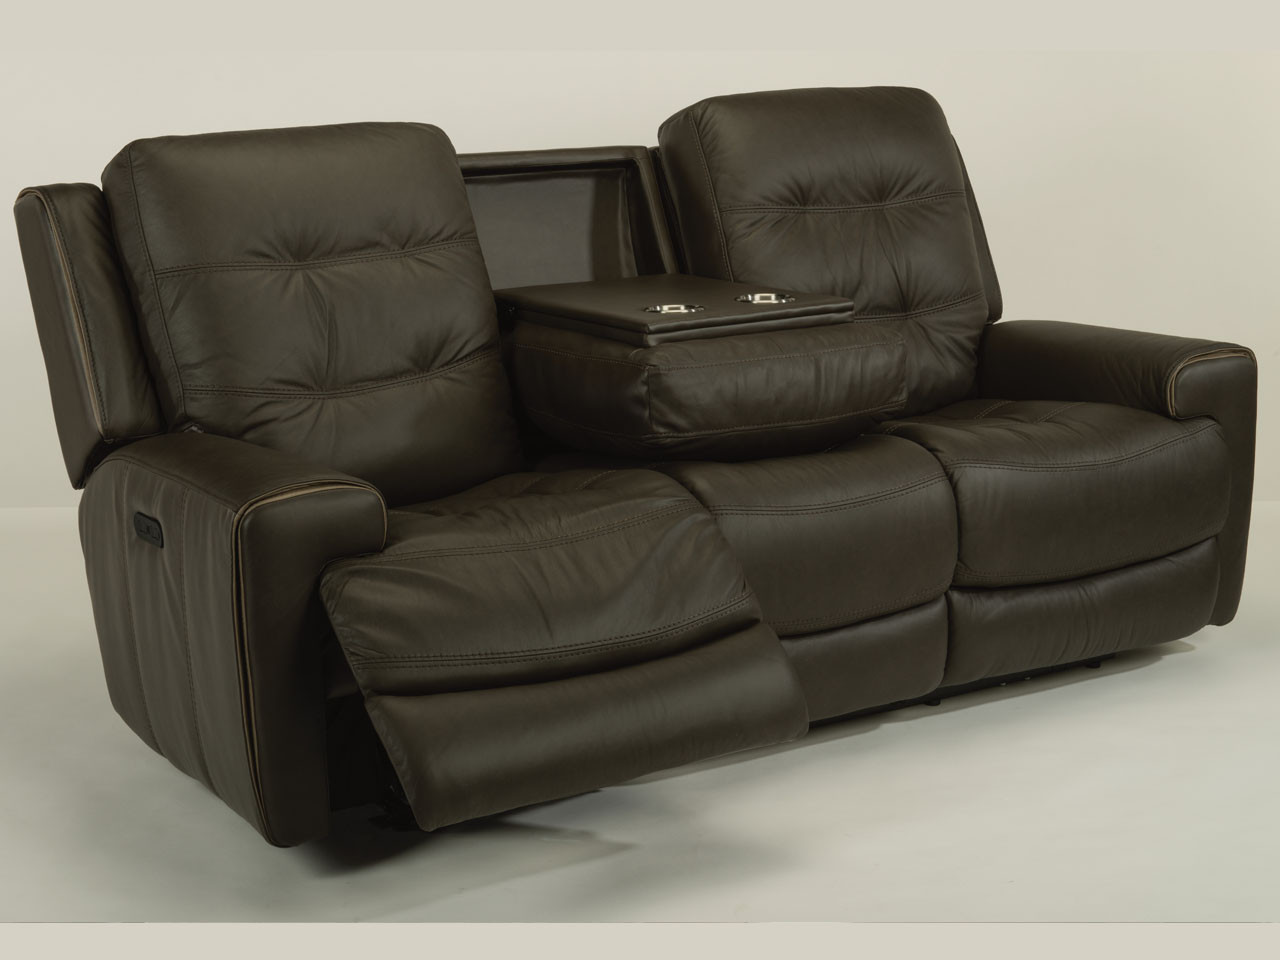 Wicklow Reclining Sofa